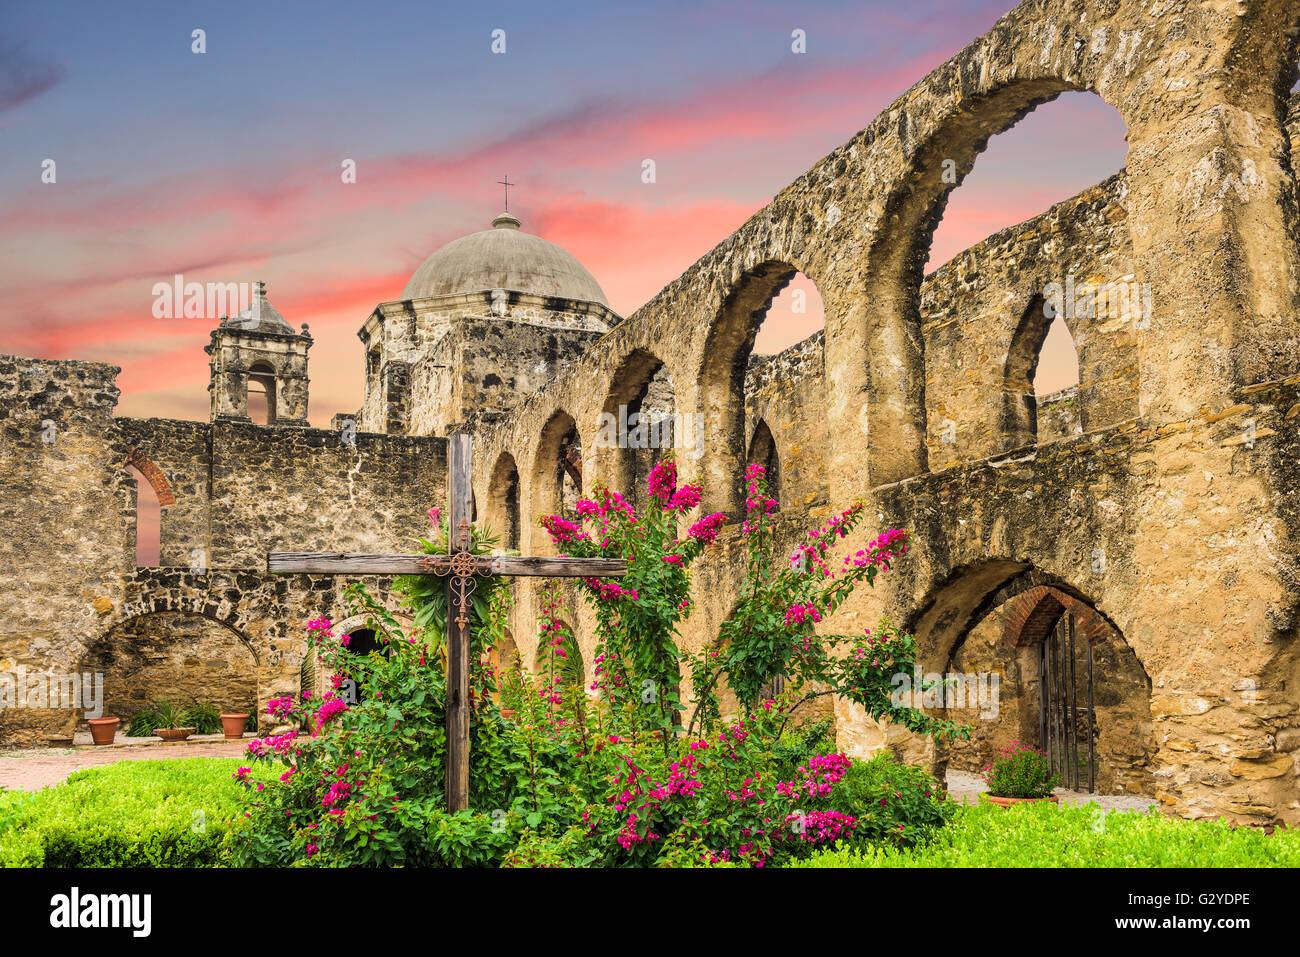 Mission San Jose in San Antonio, Texas, USA. Stockbild